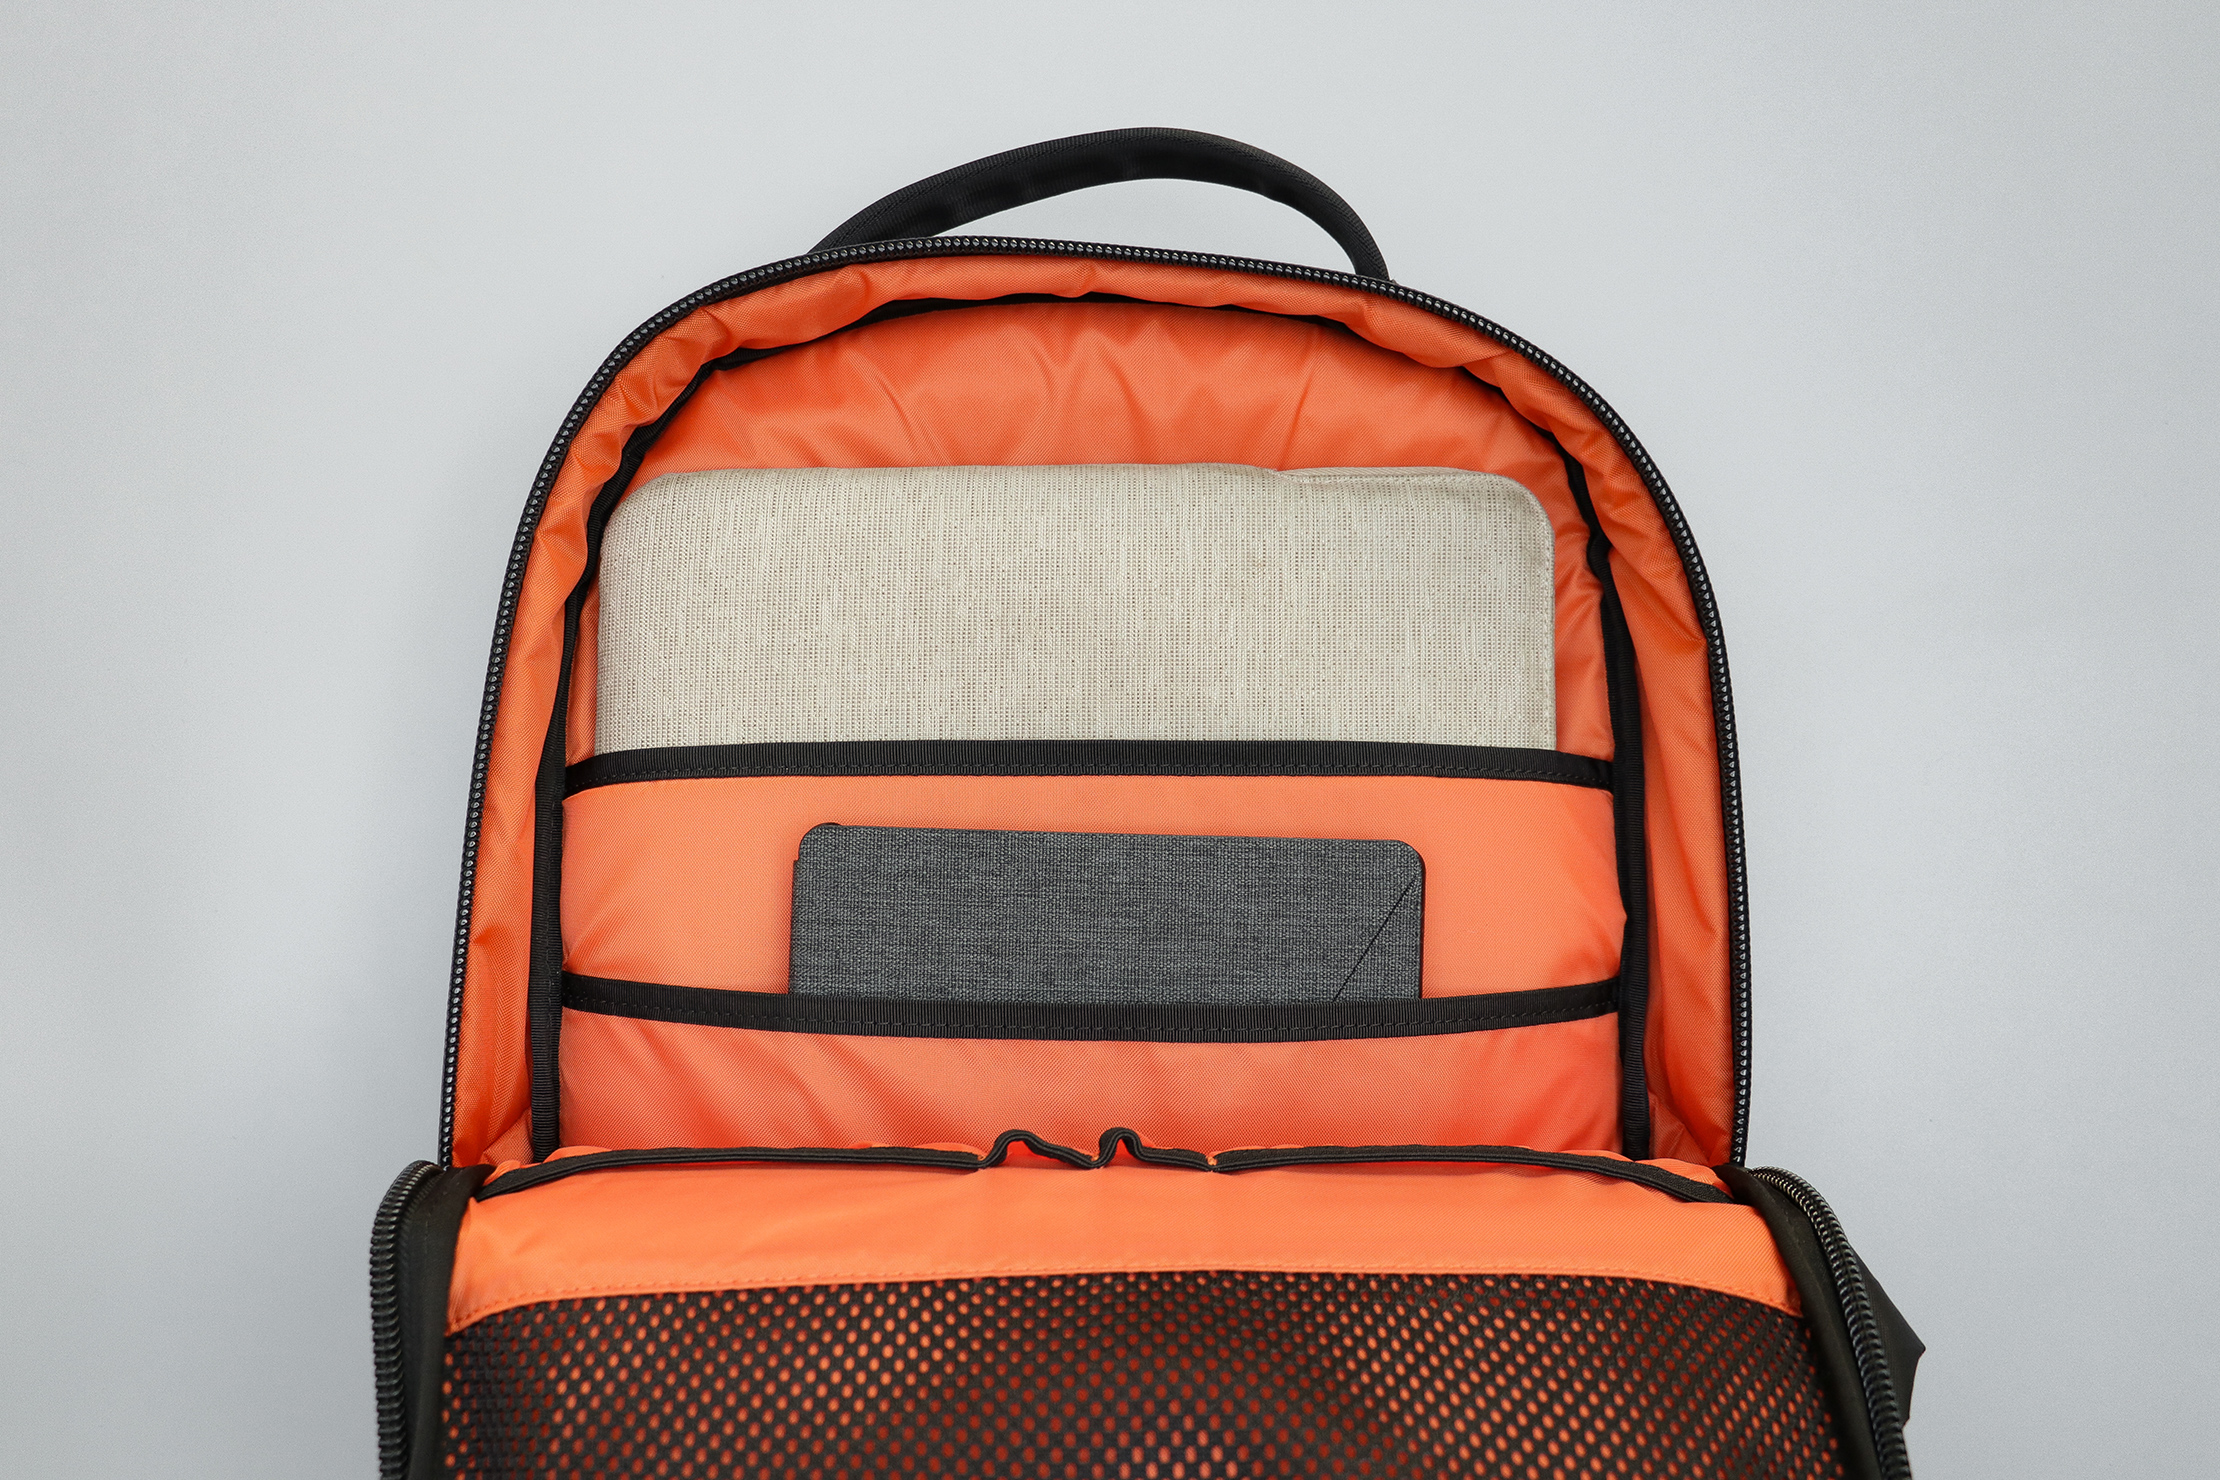 Aer Fit Pack 2 Tech Compartment With A Laptop And Tablet Inside